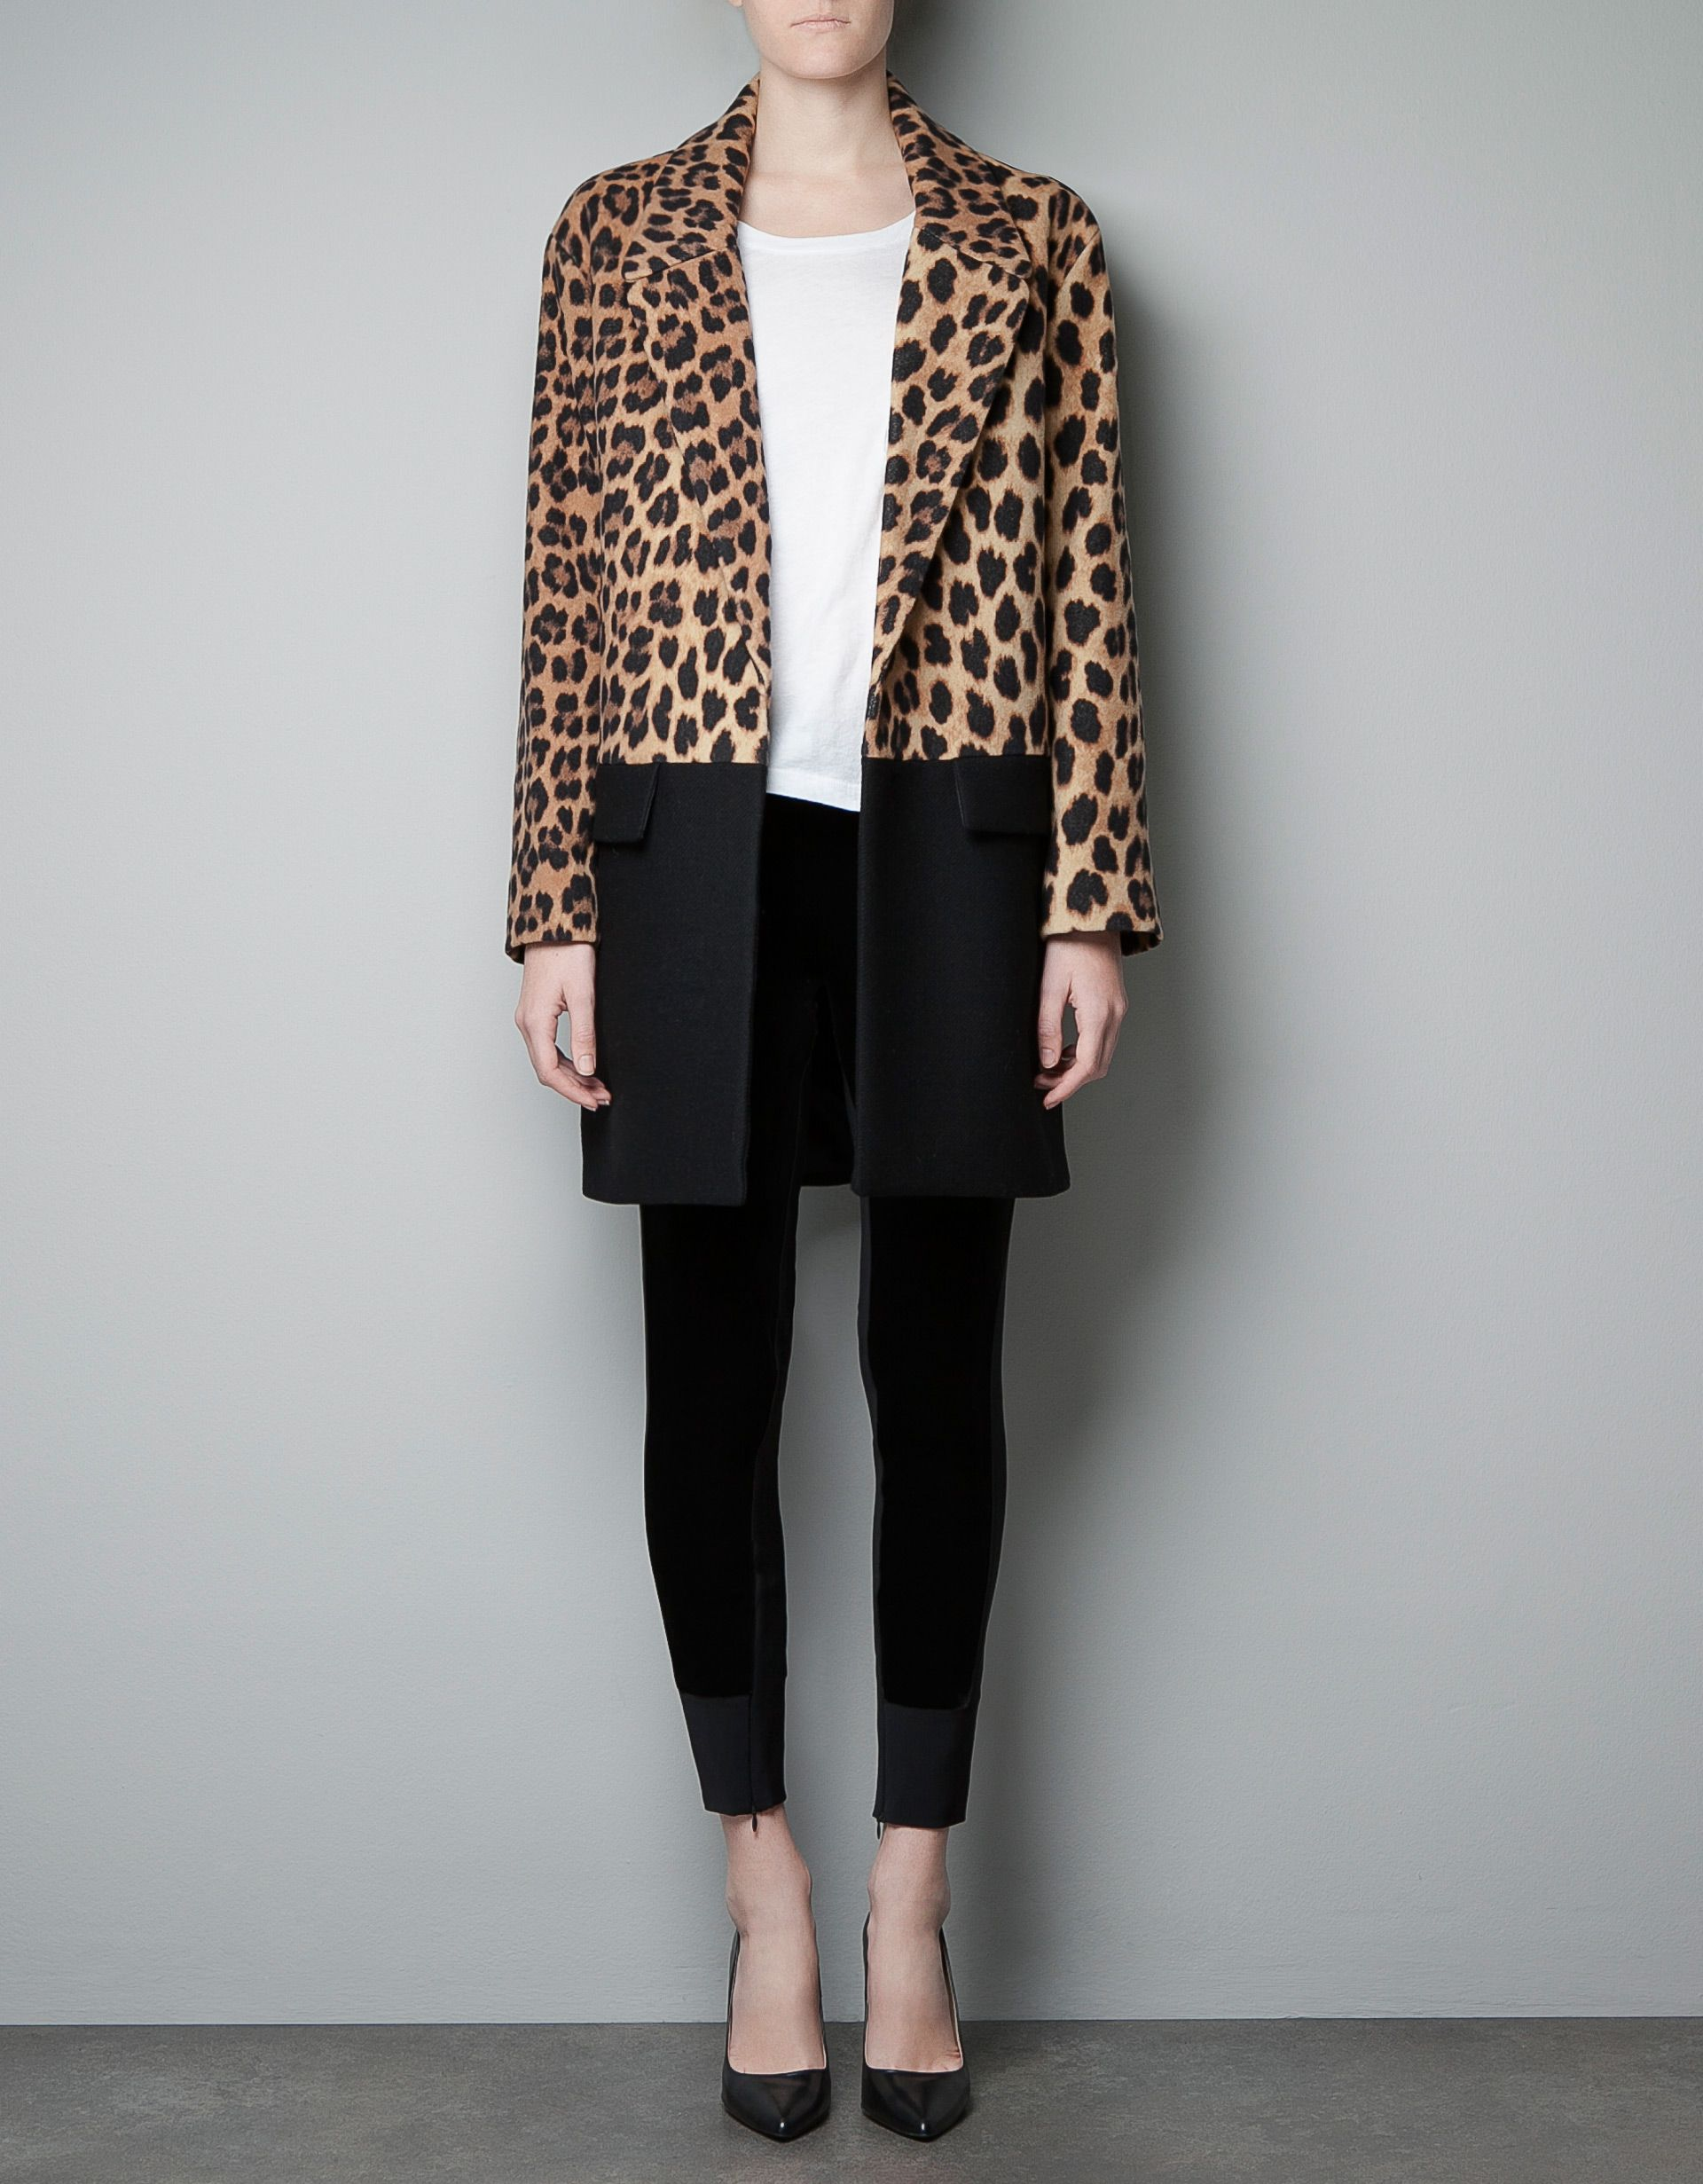 e5cf648a7a9b LEOPARD PRINT AND COLOR BLOCK COAT - Collection - Woman - SALE - ZARA  United States $90